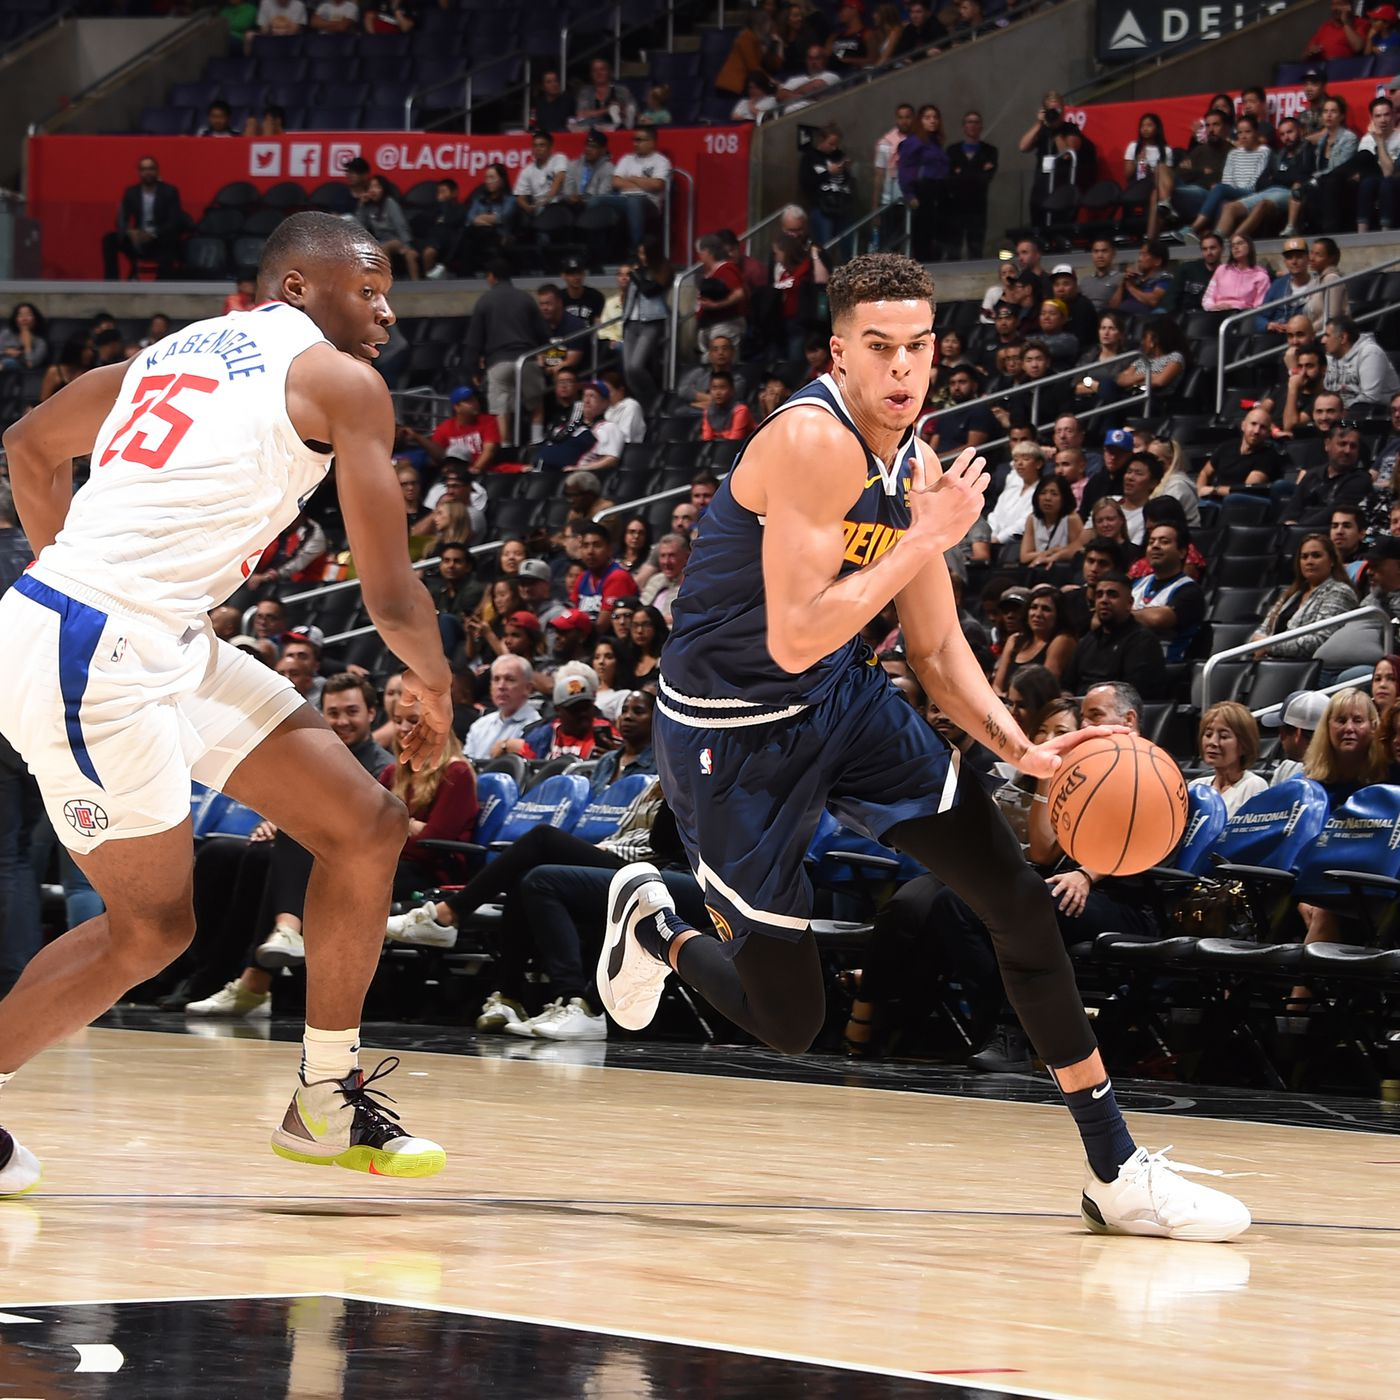 Clippers Vs Nuggets Preview Clippers Face Major Test In